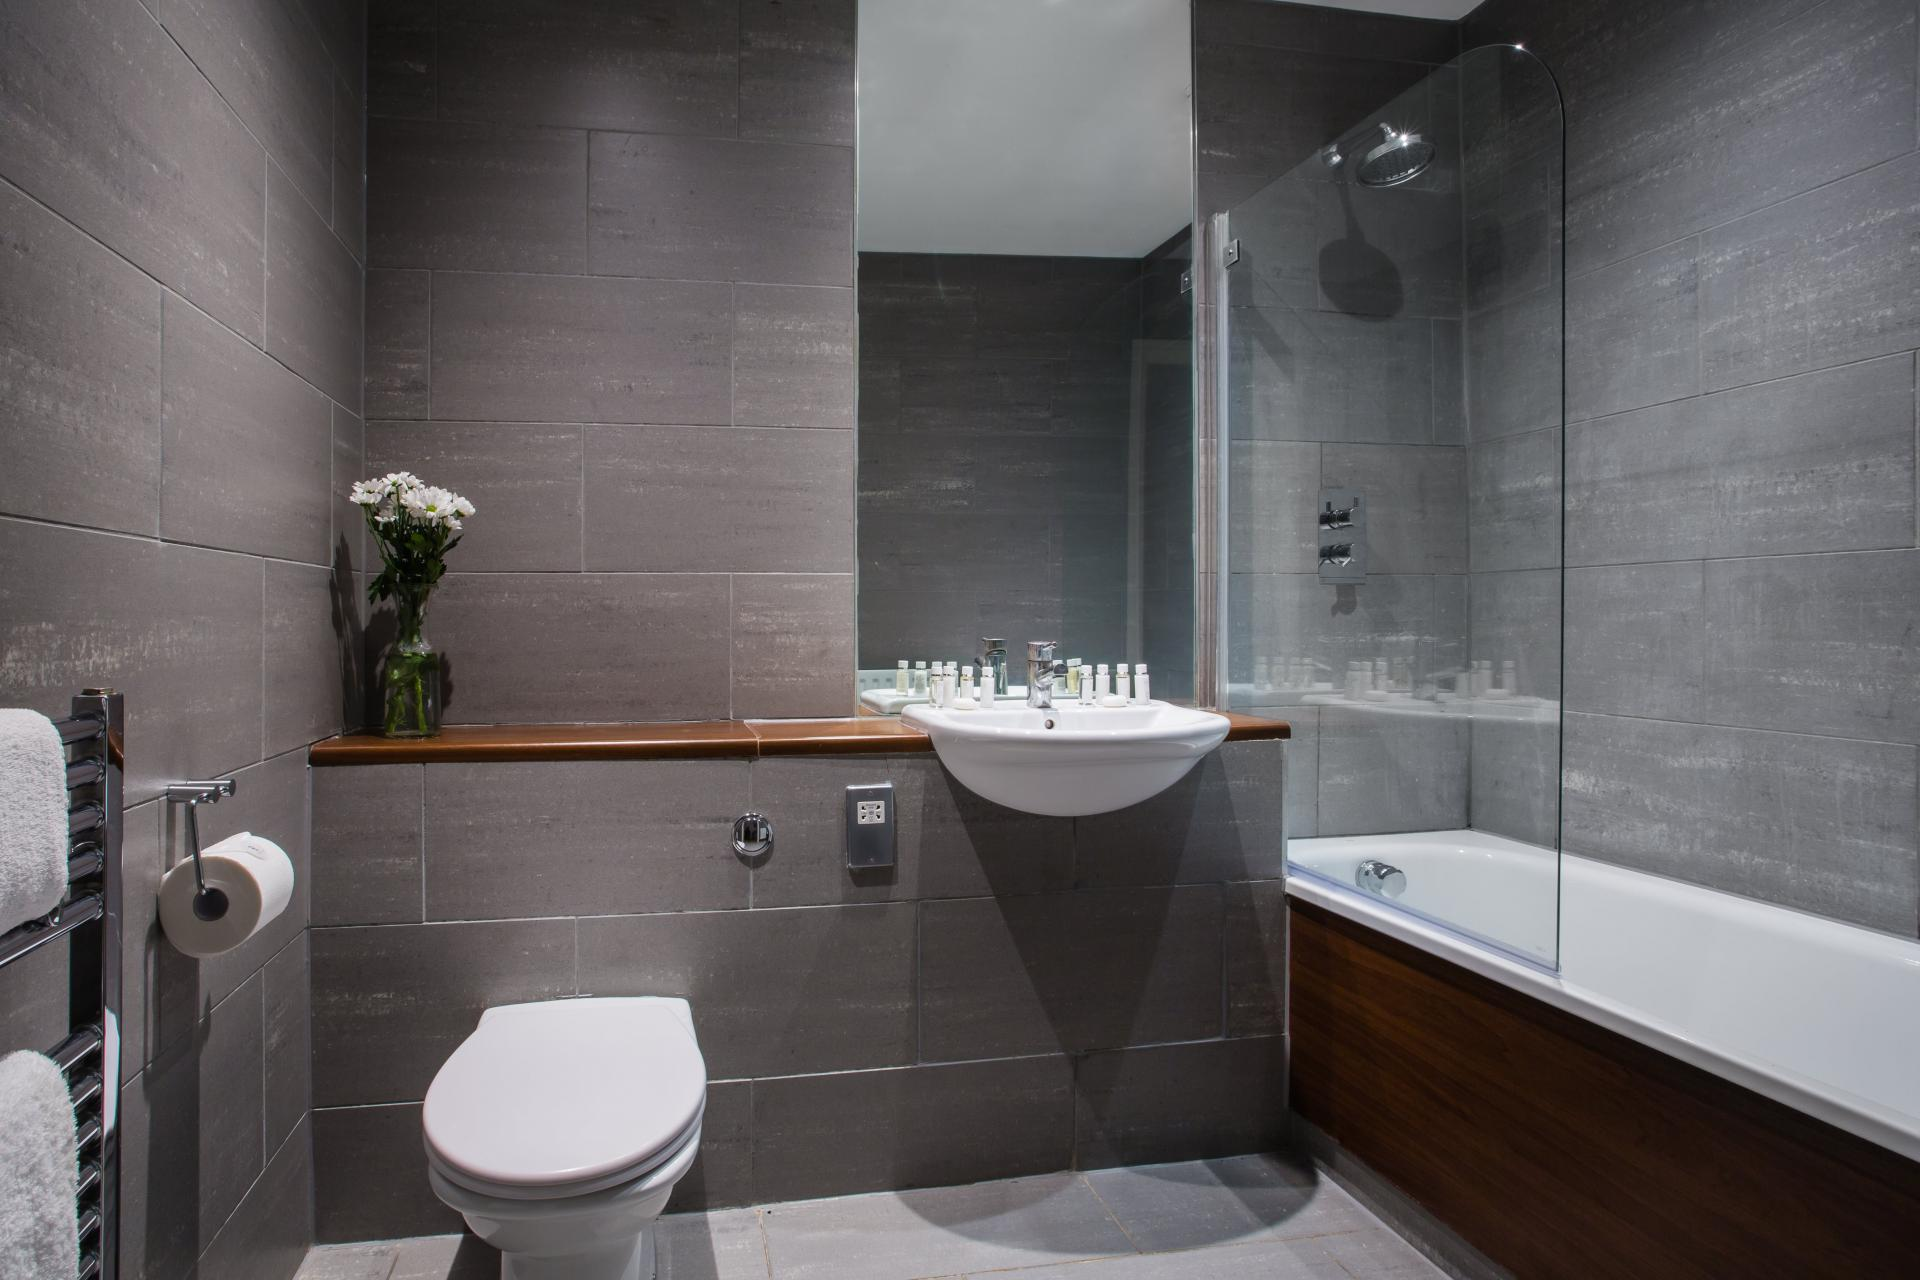 Bathroom at Reading Central Apartments, Centre, Reading - Citybase Apartments